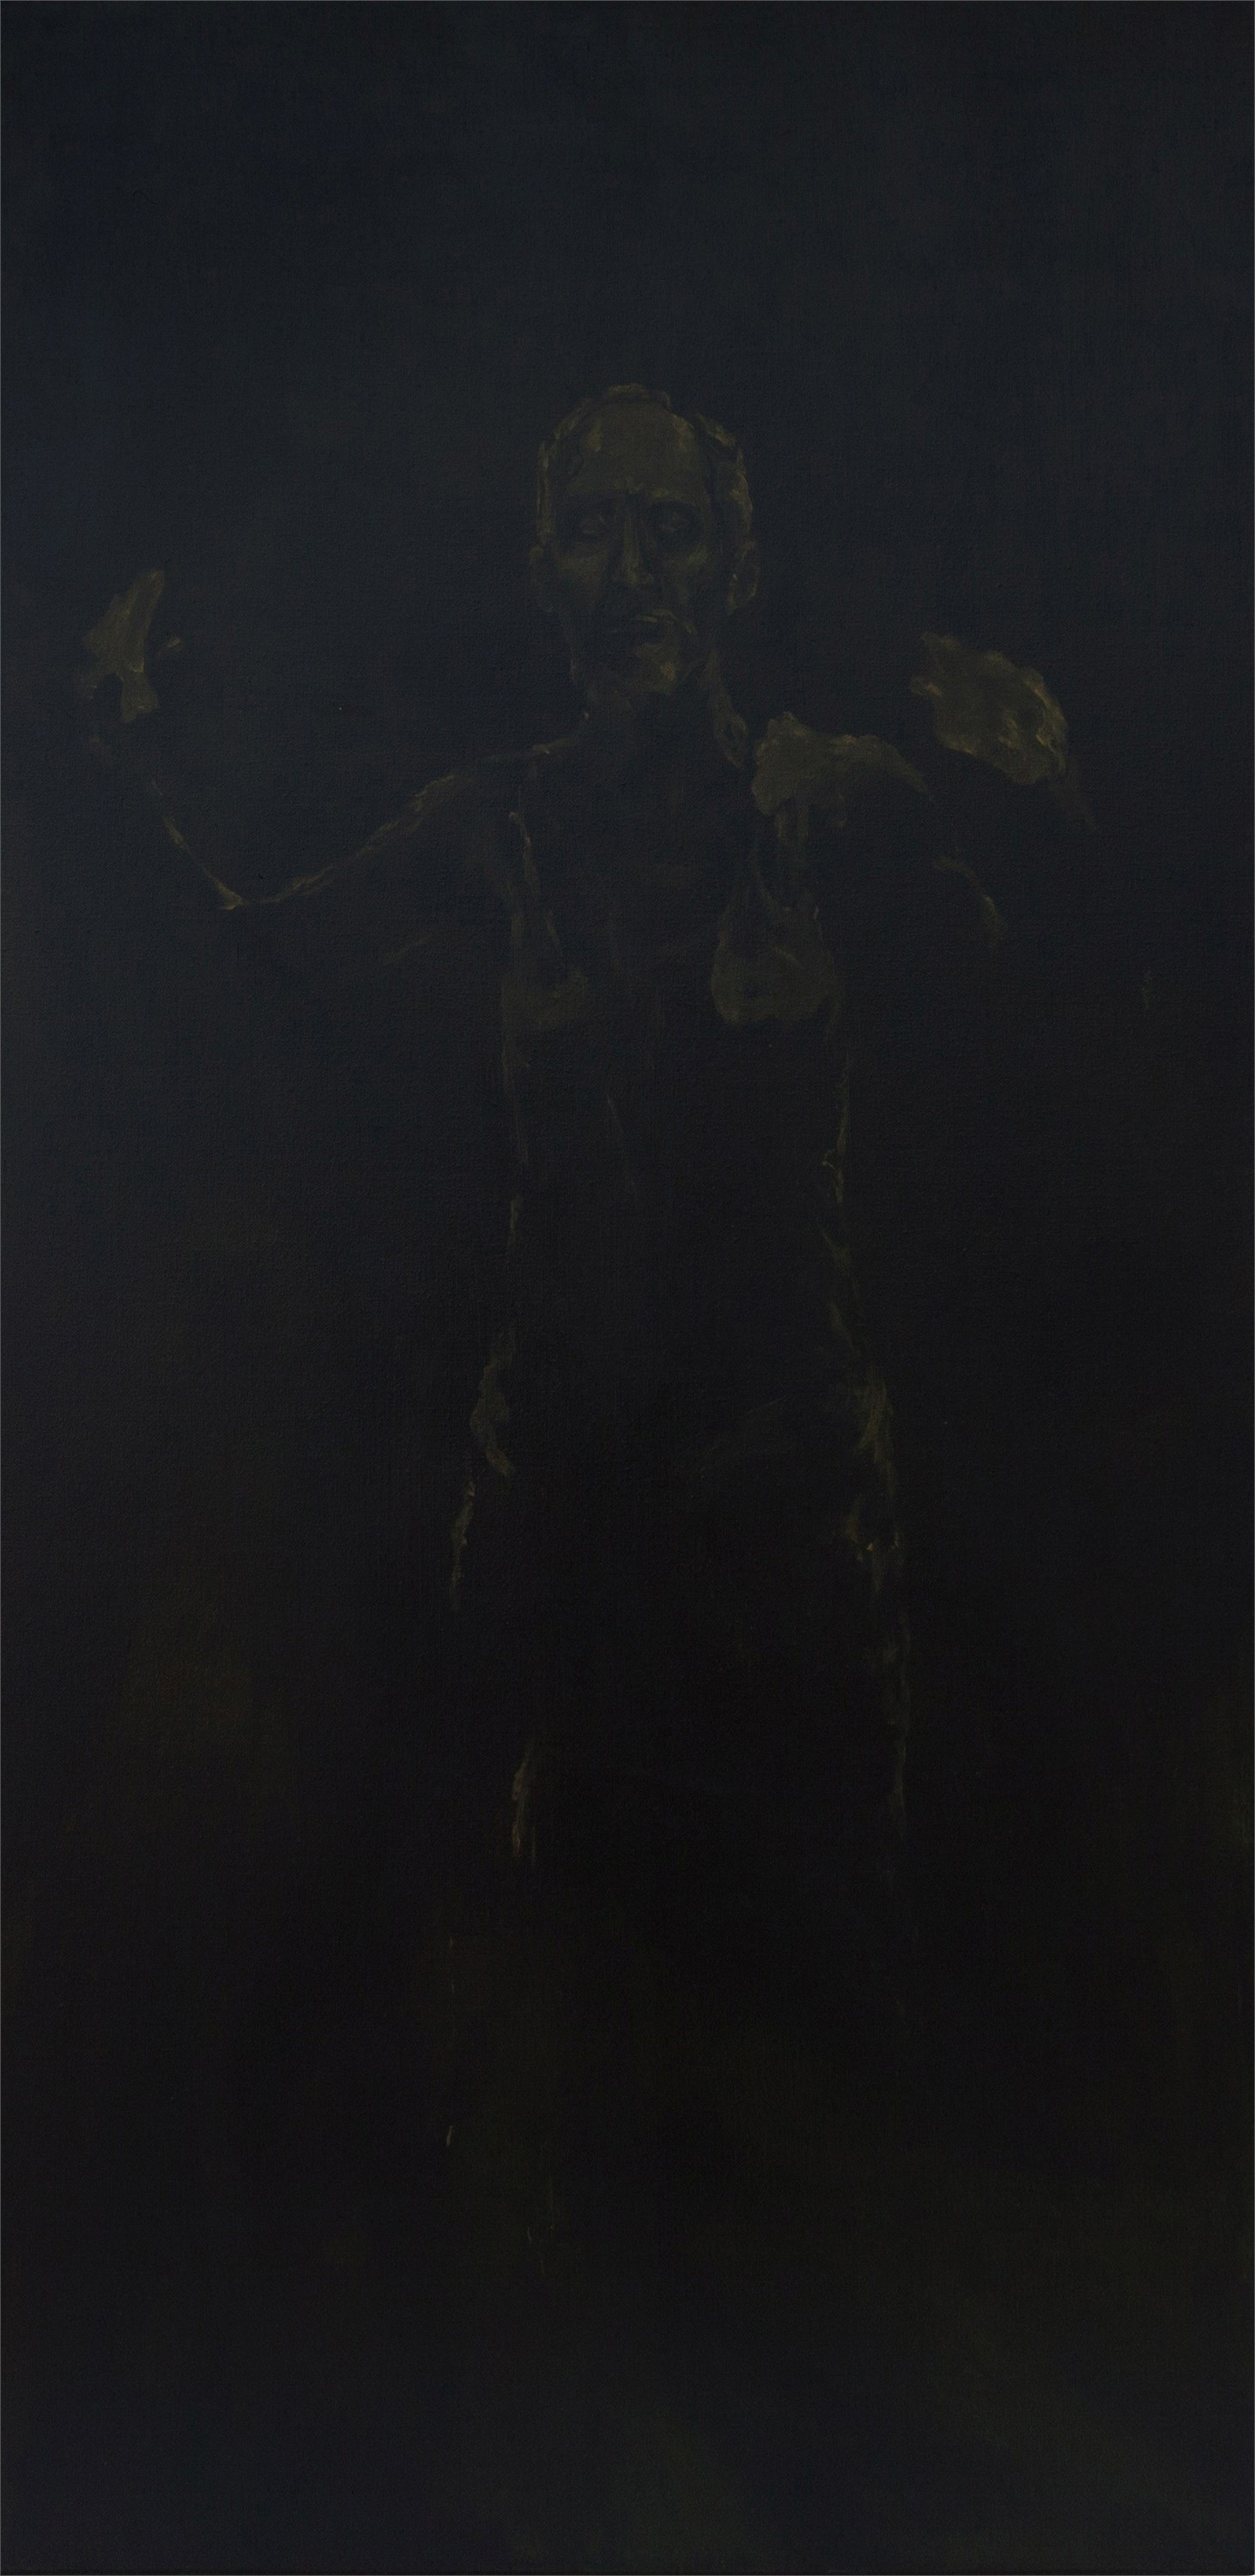 da perda (II), original Man Canvas Painting by Pedro Santos Silva